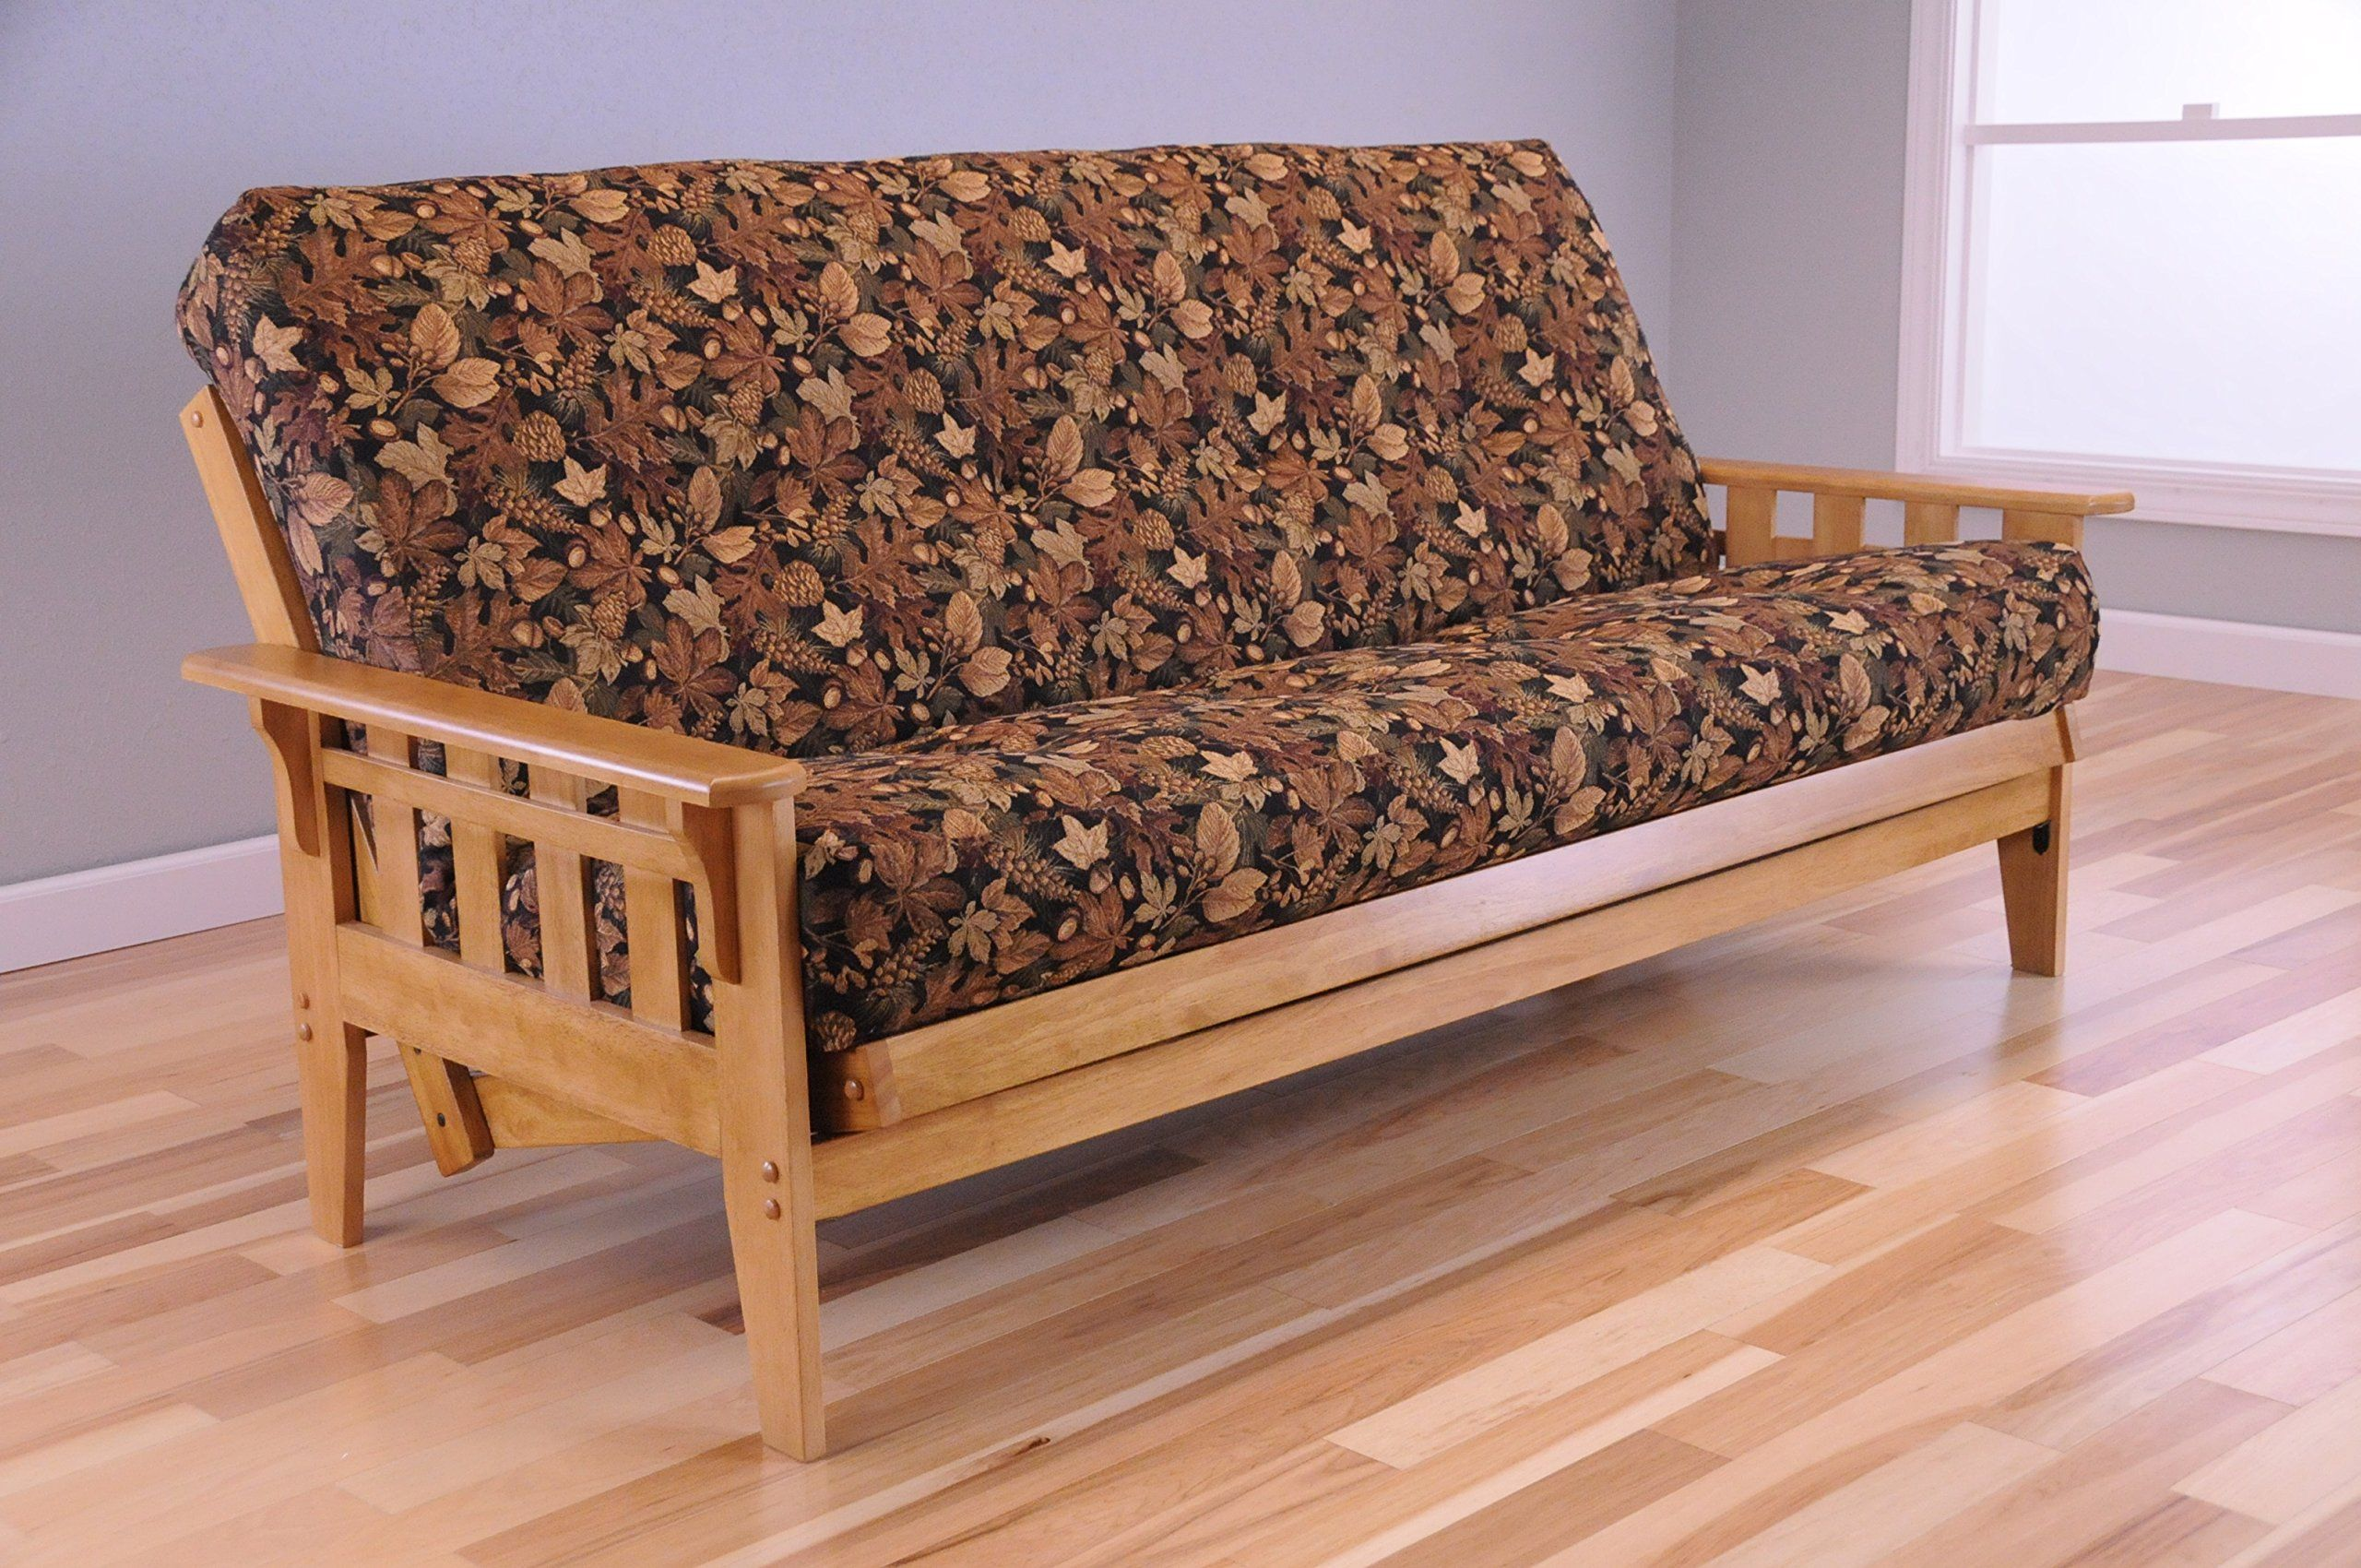 Wooden Futon Mission Style Maple Butternut Light Wood With Full Size